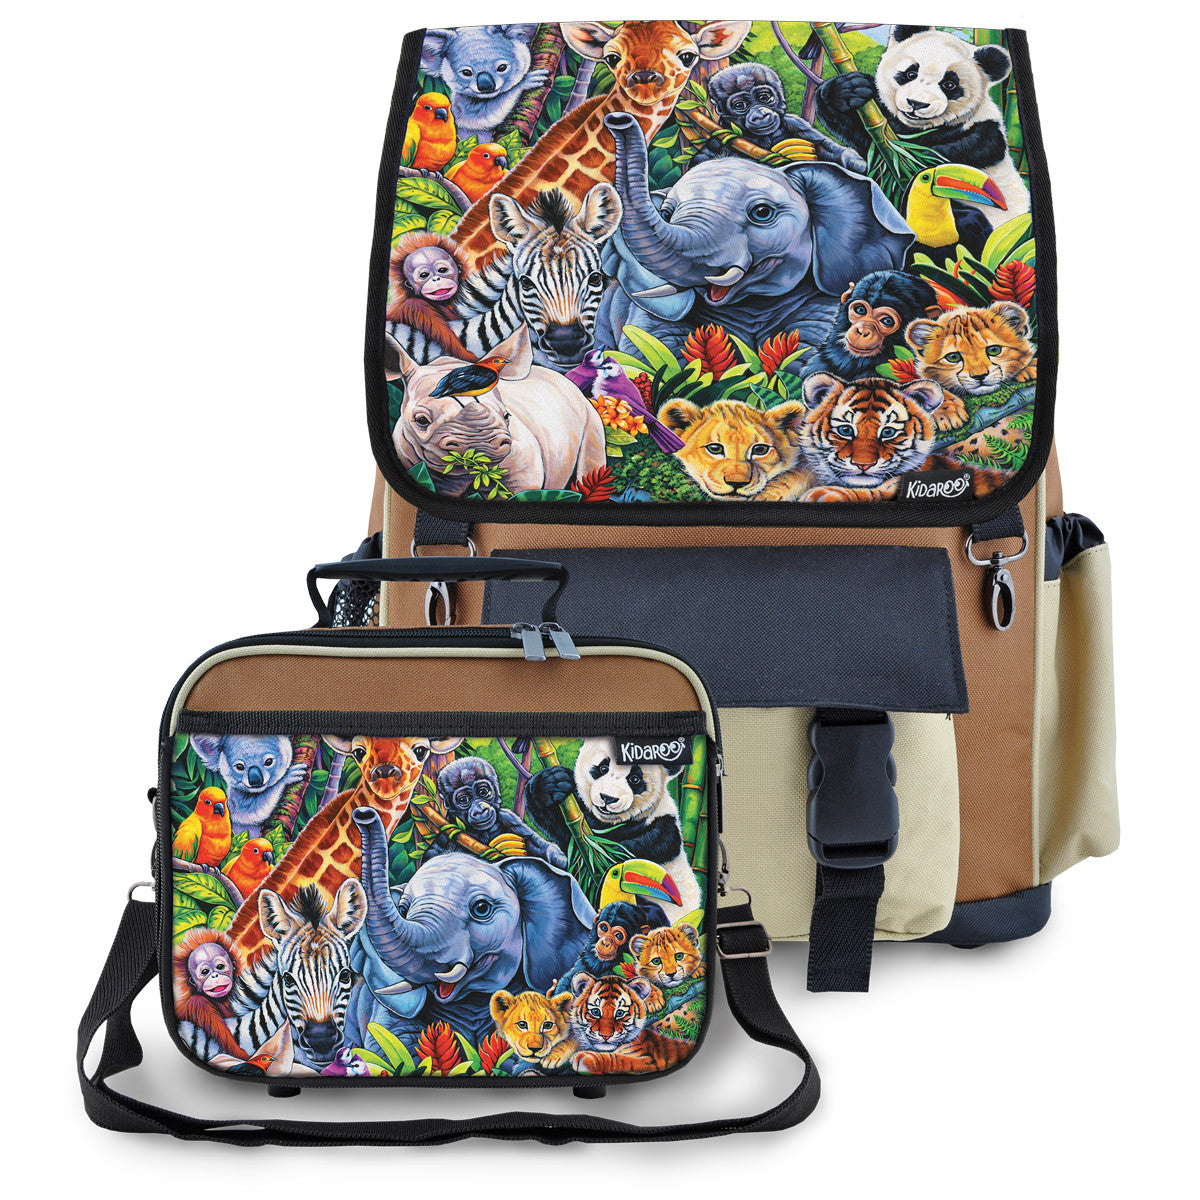 Kidaroo Brown Jungle Babies School Backpack & Lunchbox Set for Boys, Girls, Kids